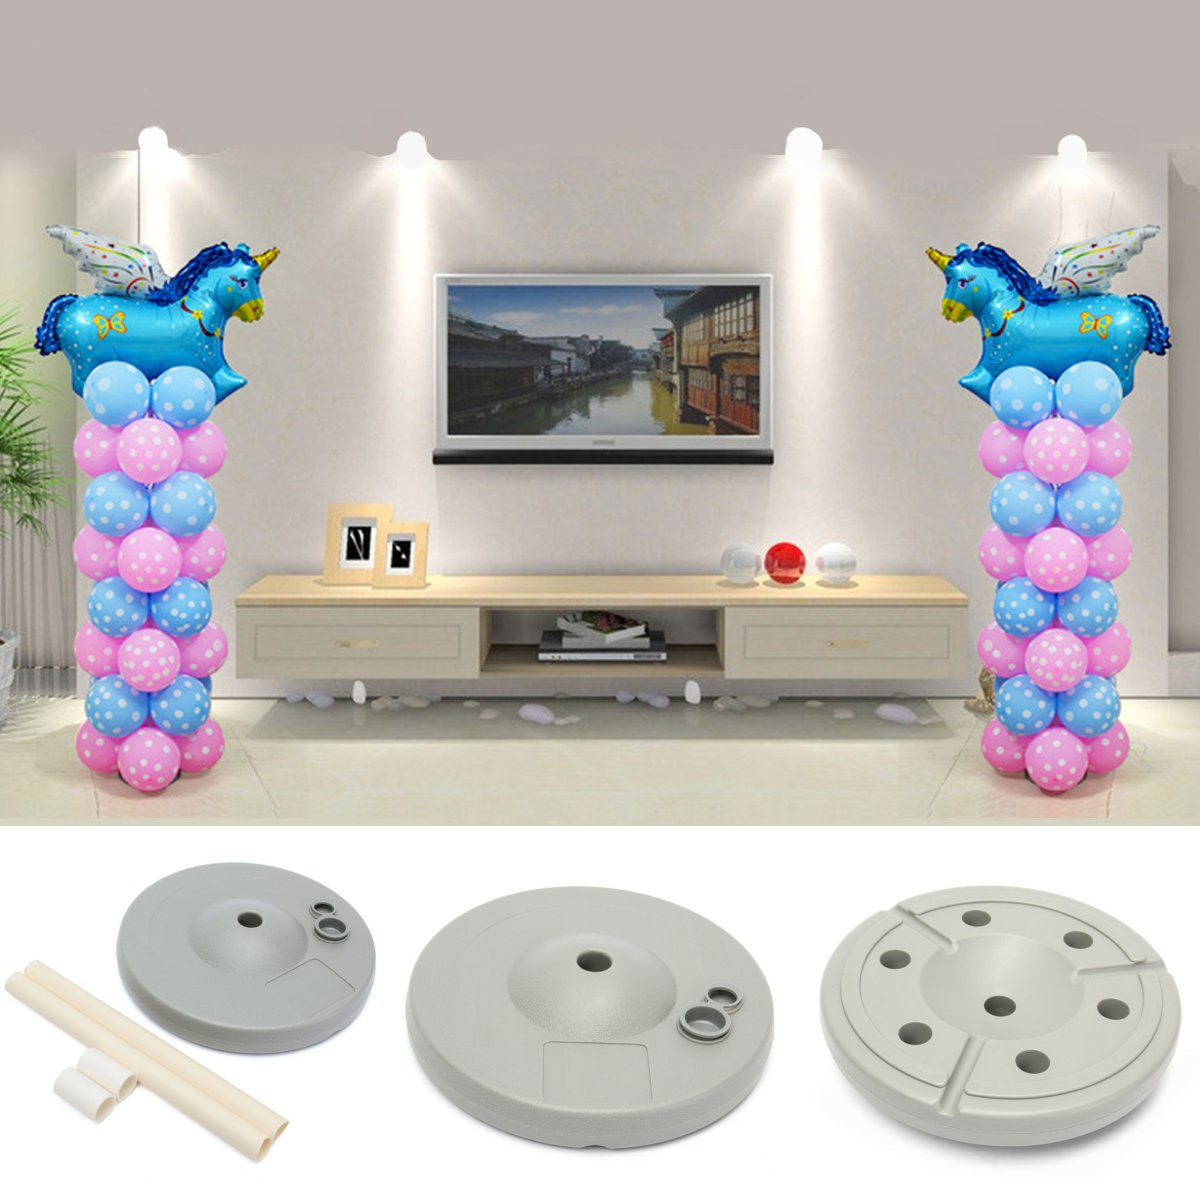 2 Set Balloon Column Base Stand Door Stage Upright Display Kit Birthday Wedding Festival Party Decor  59 inch Tall